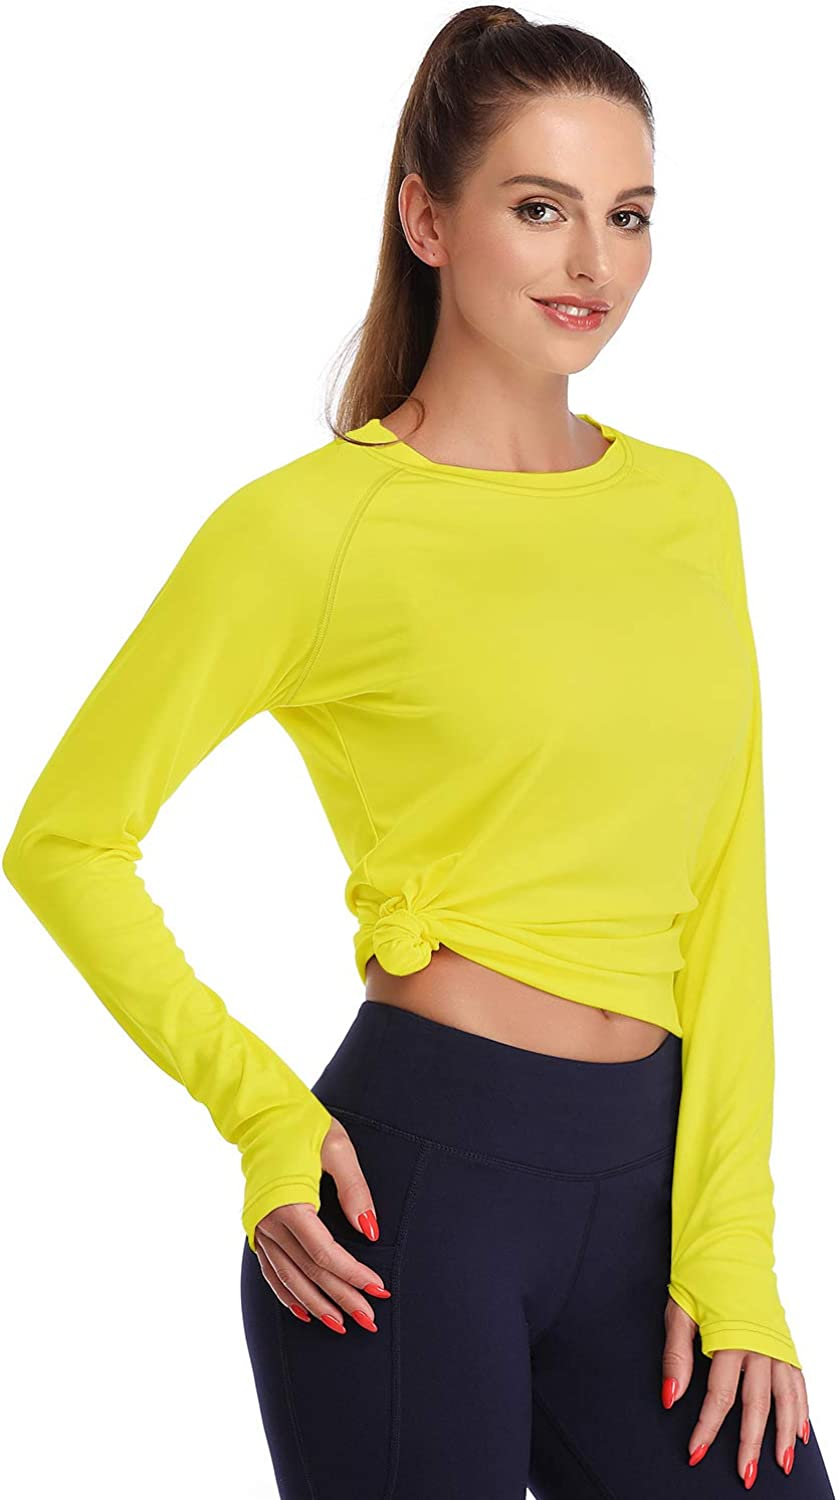 DAYOUNG Womens UPF 50+ UV Sun Protection Long Sleeve T-Shirt Running Hiking Outdoors Performance Athletic Top Thumb Hole: Clothing